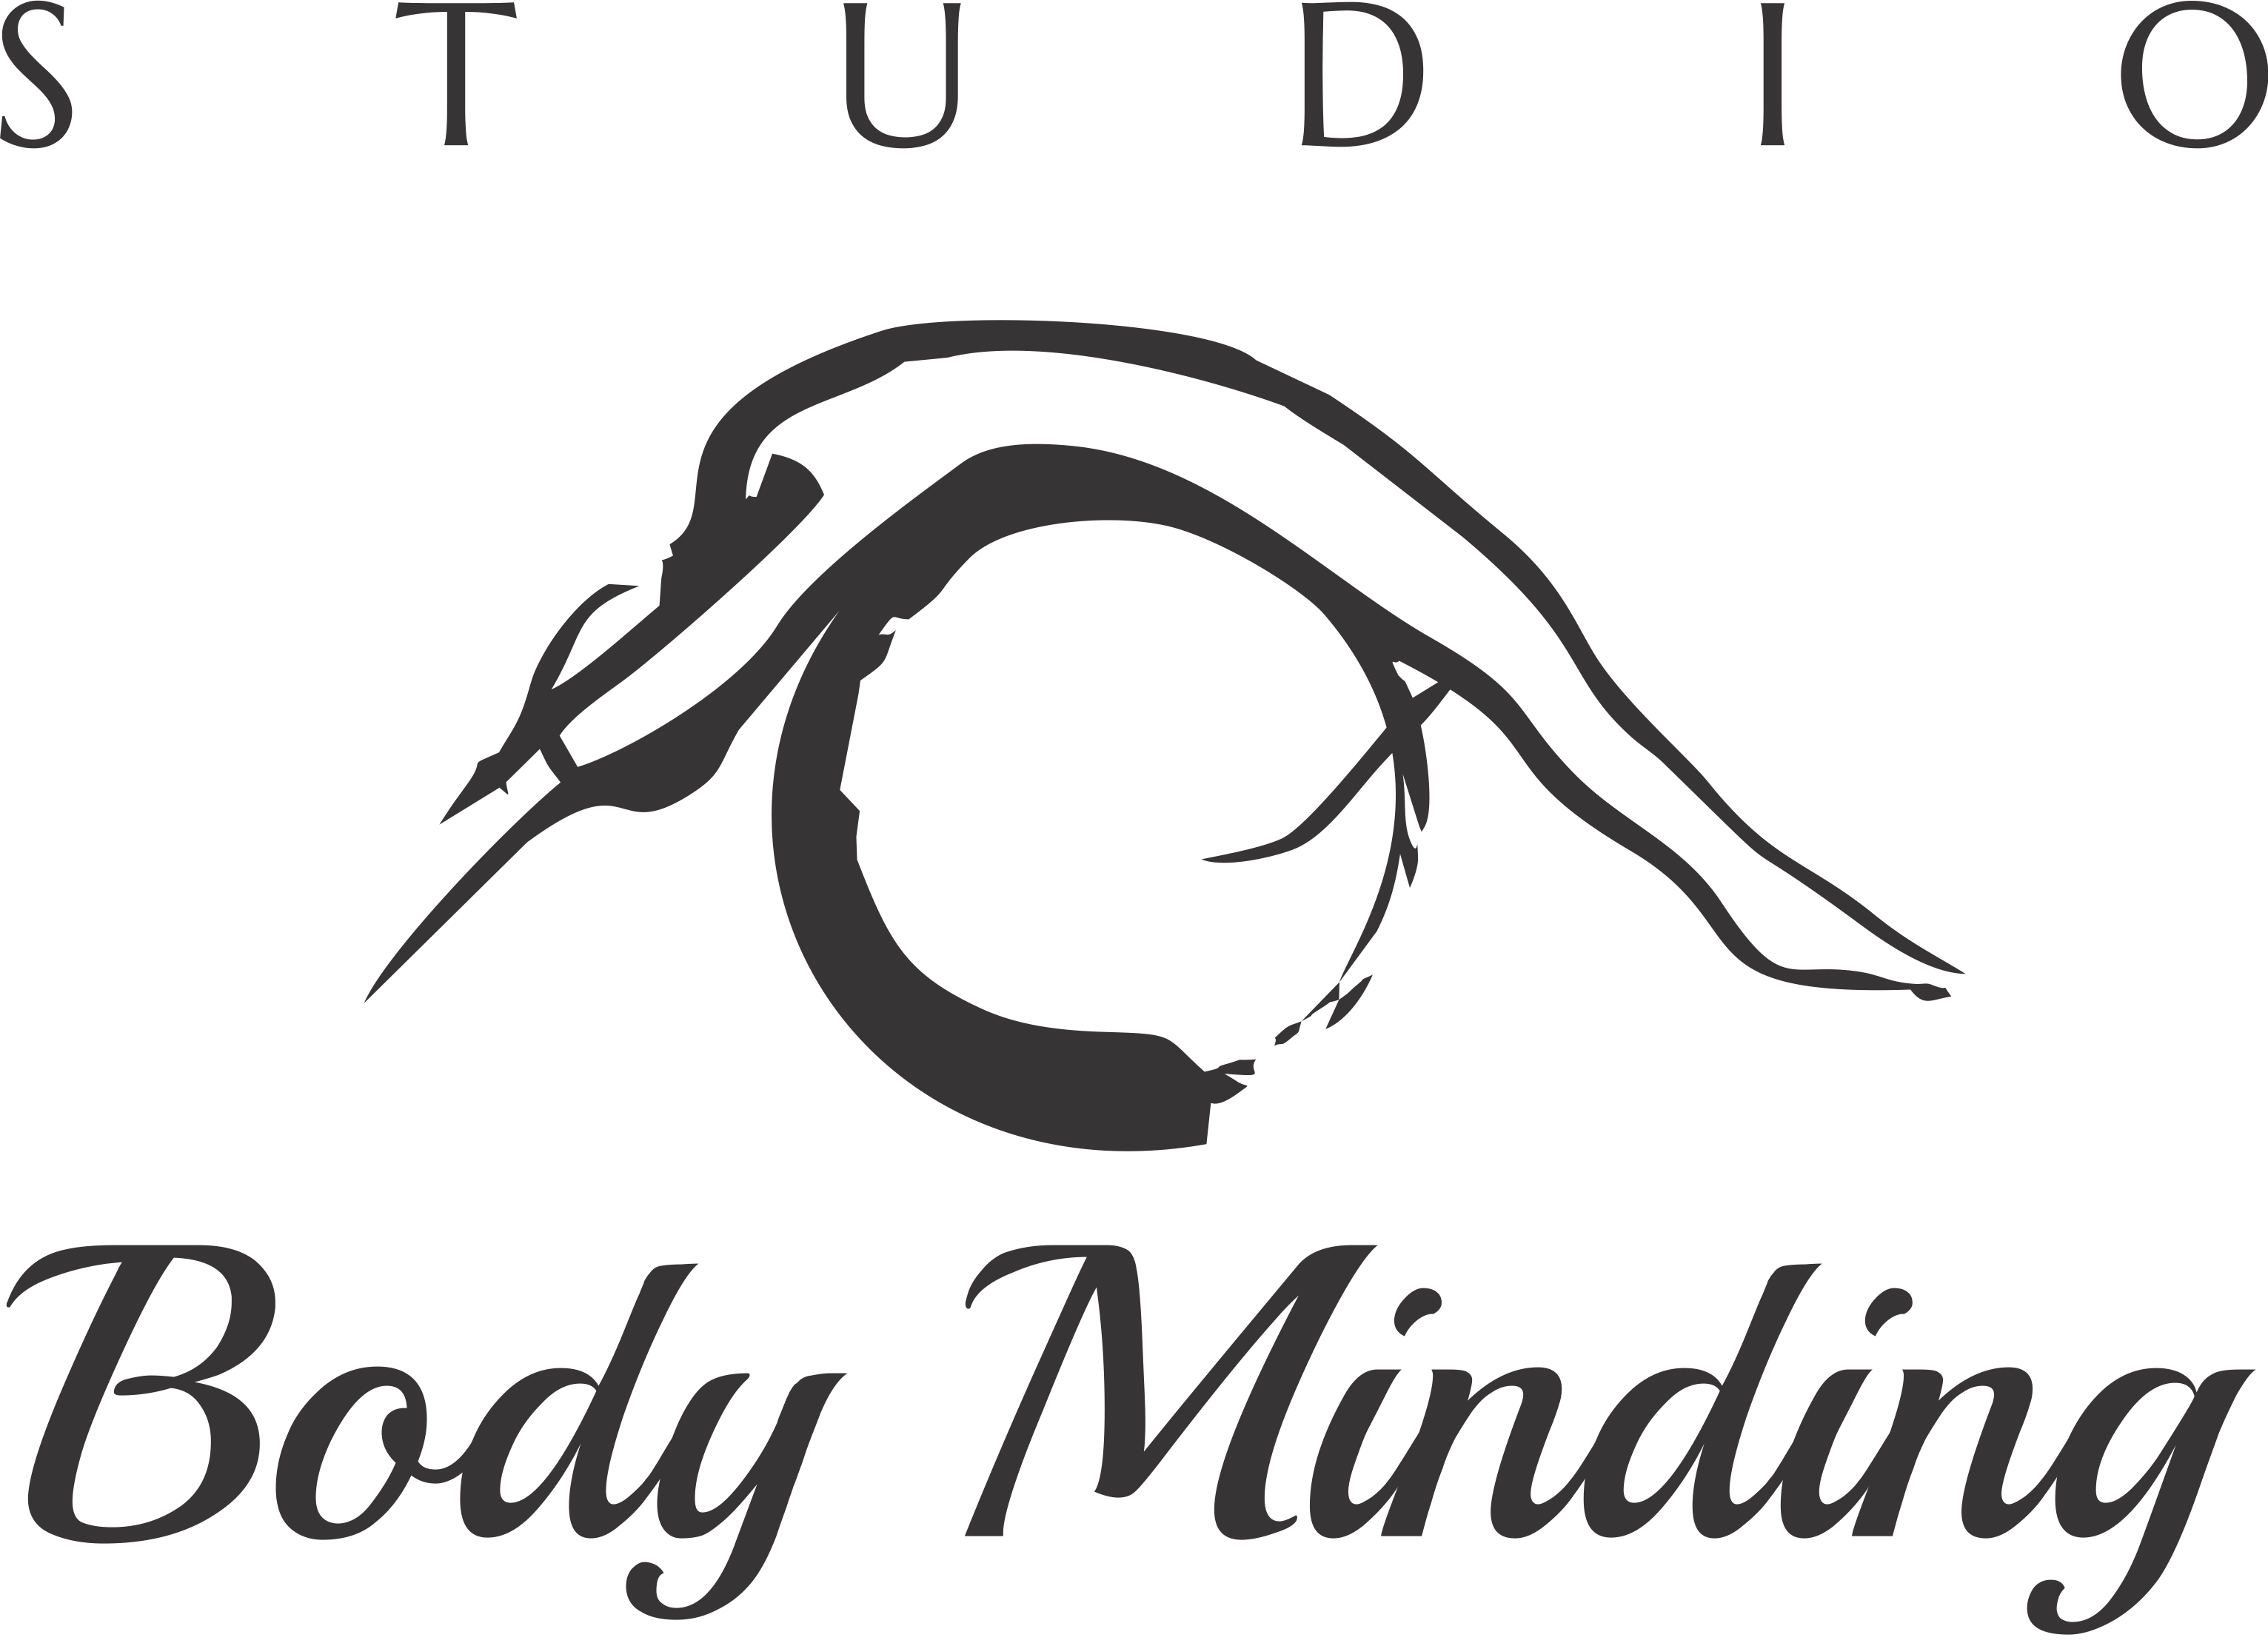 Body Minding Studio